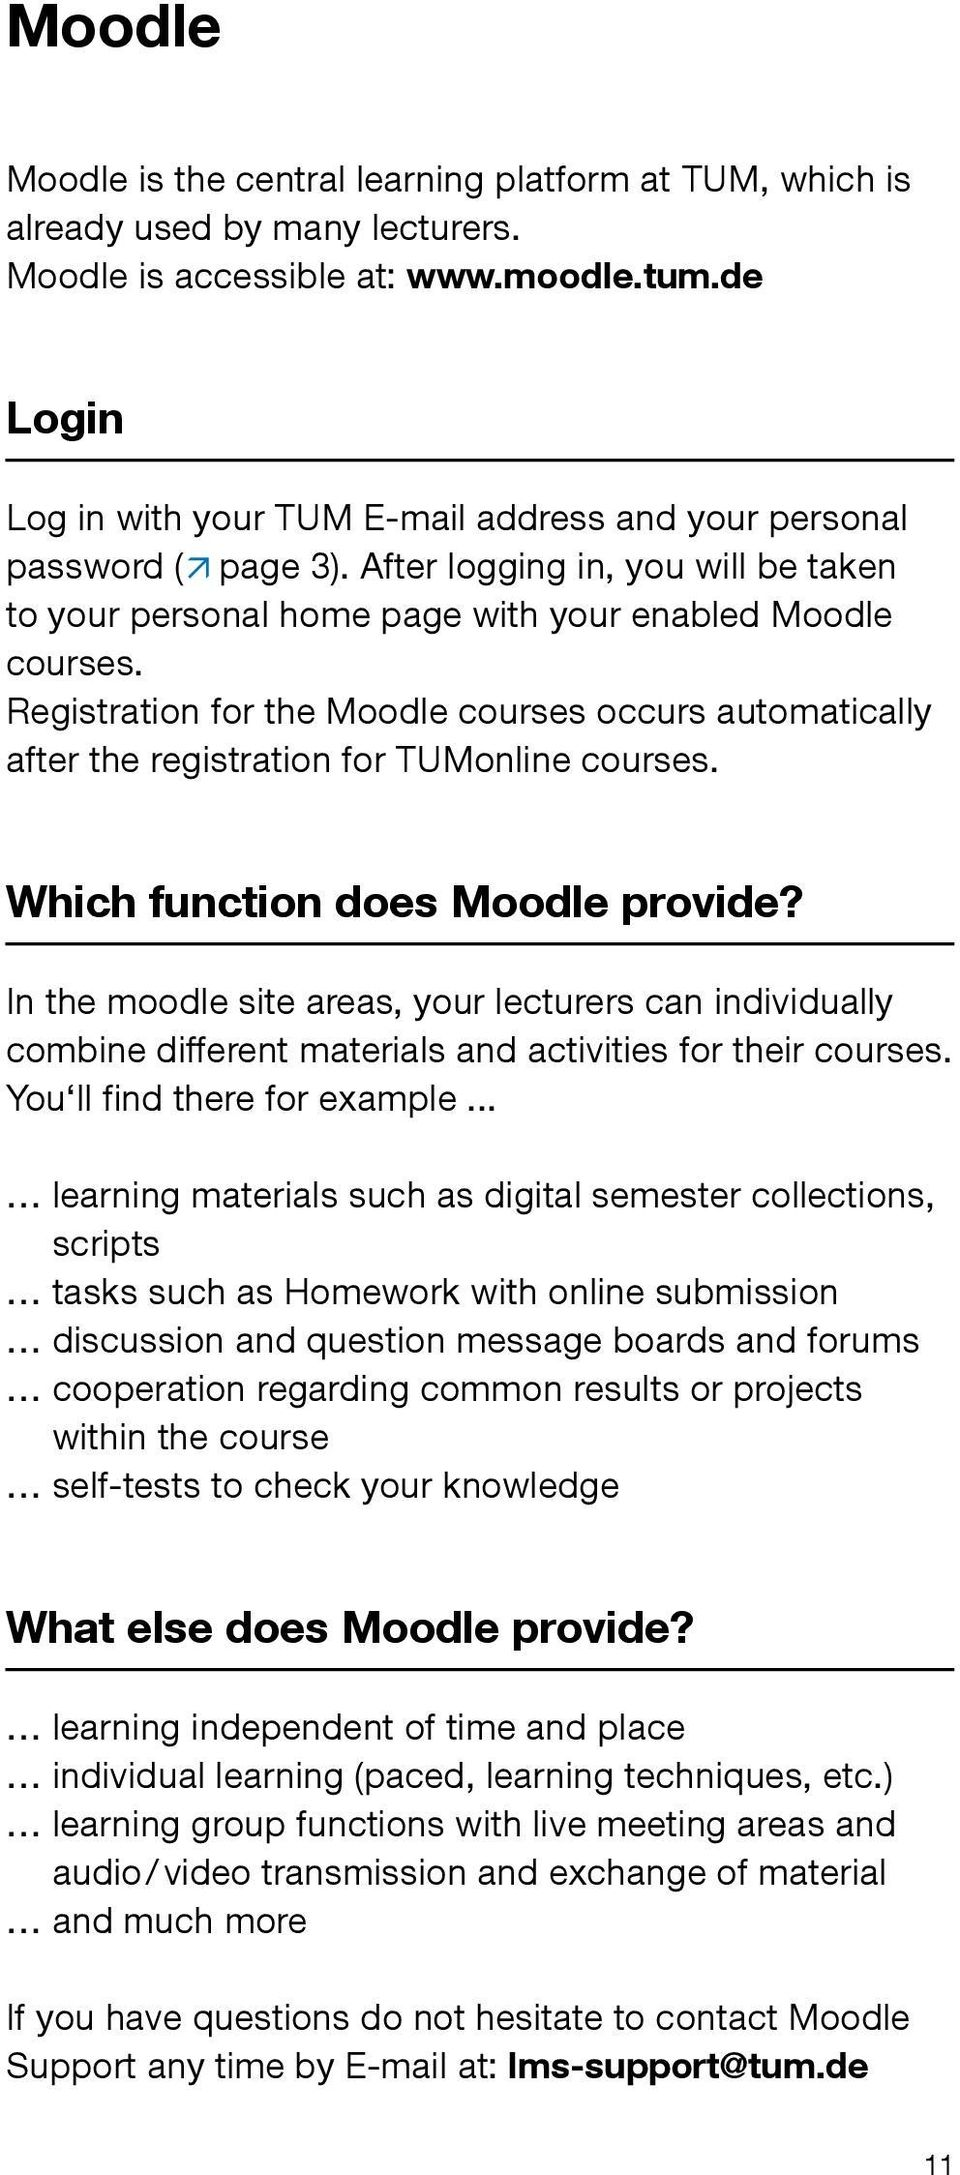 Registration for the Moodle courses occurs automatically after the registration for TUMonline courses. Which function does Moodle provide?